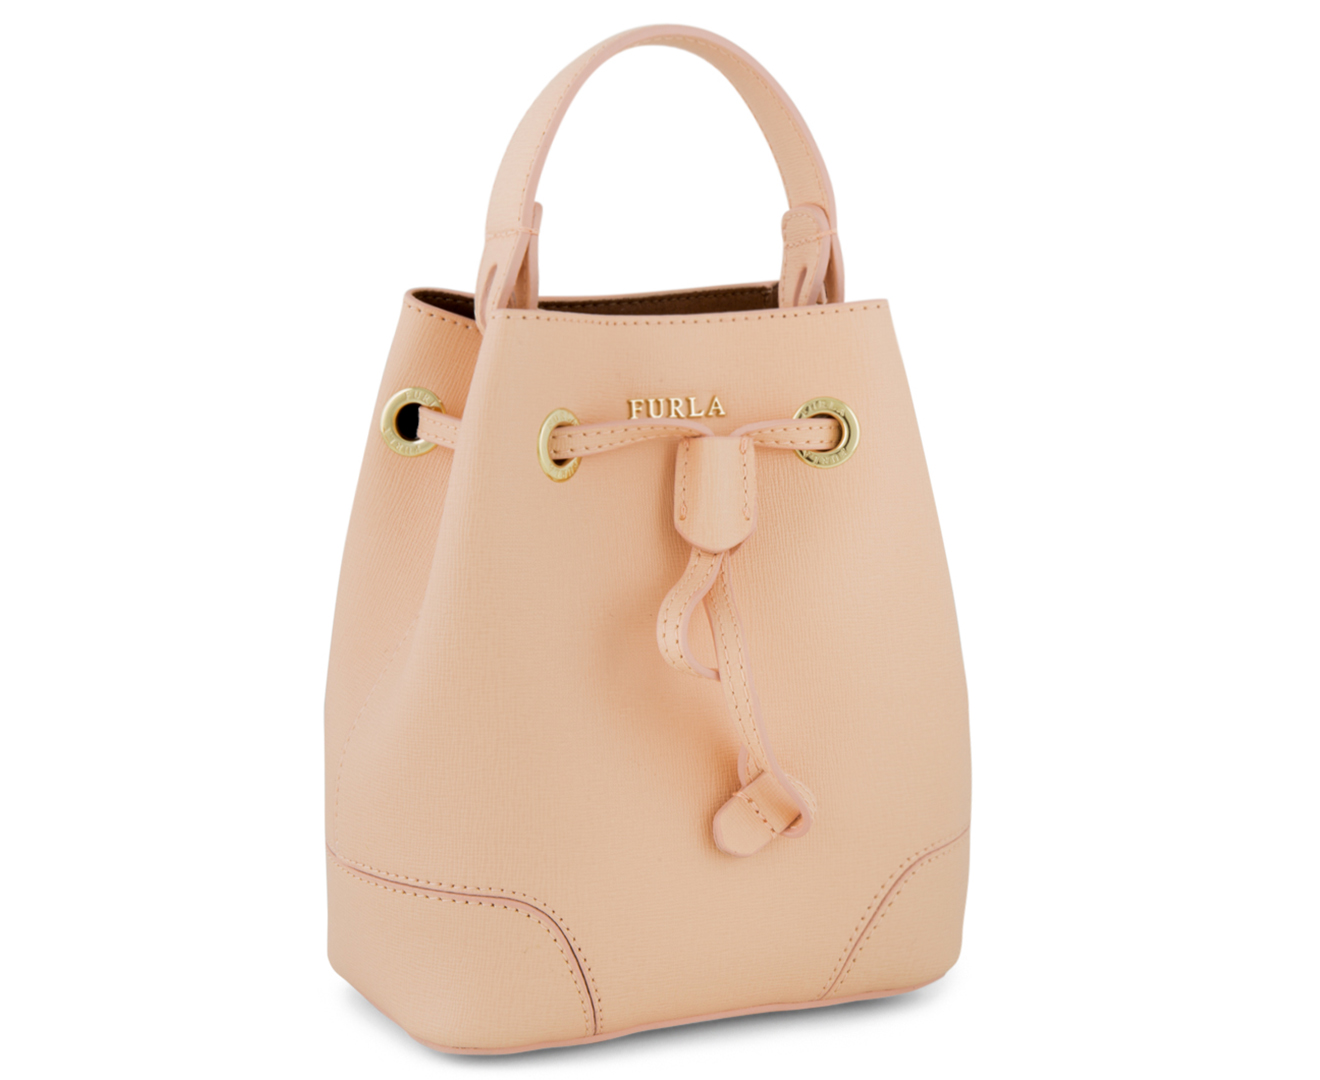 254099076299 Furla Stacy Mini Bucket Bag - Rosa Chiaro C | Catch.com.au